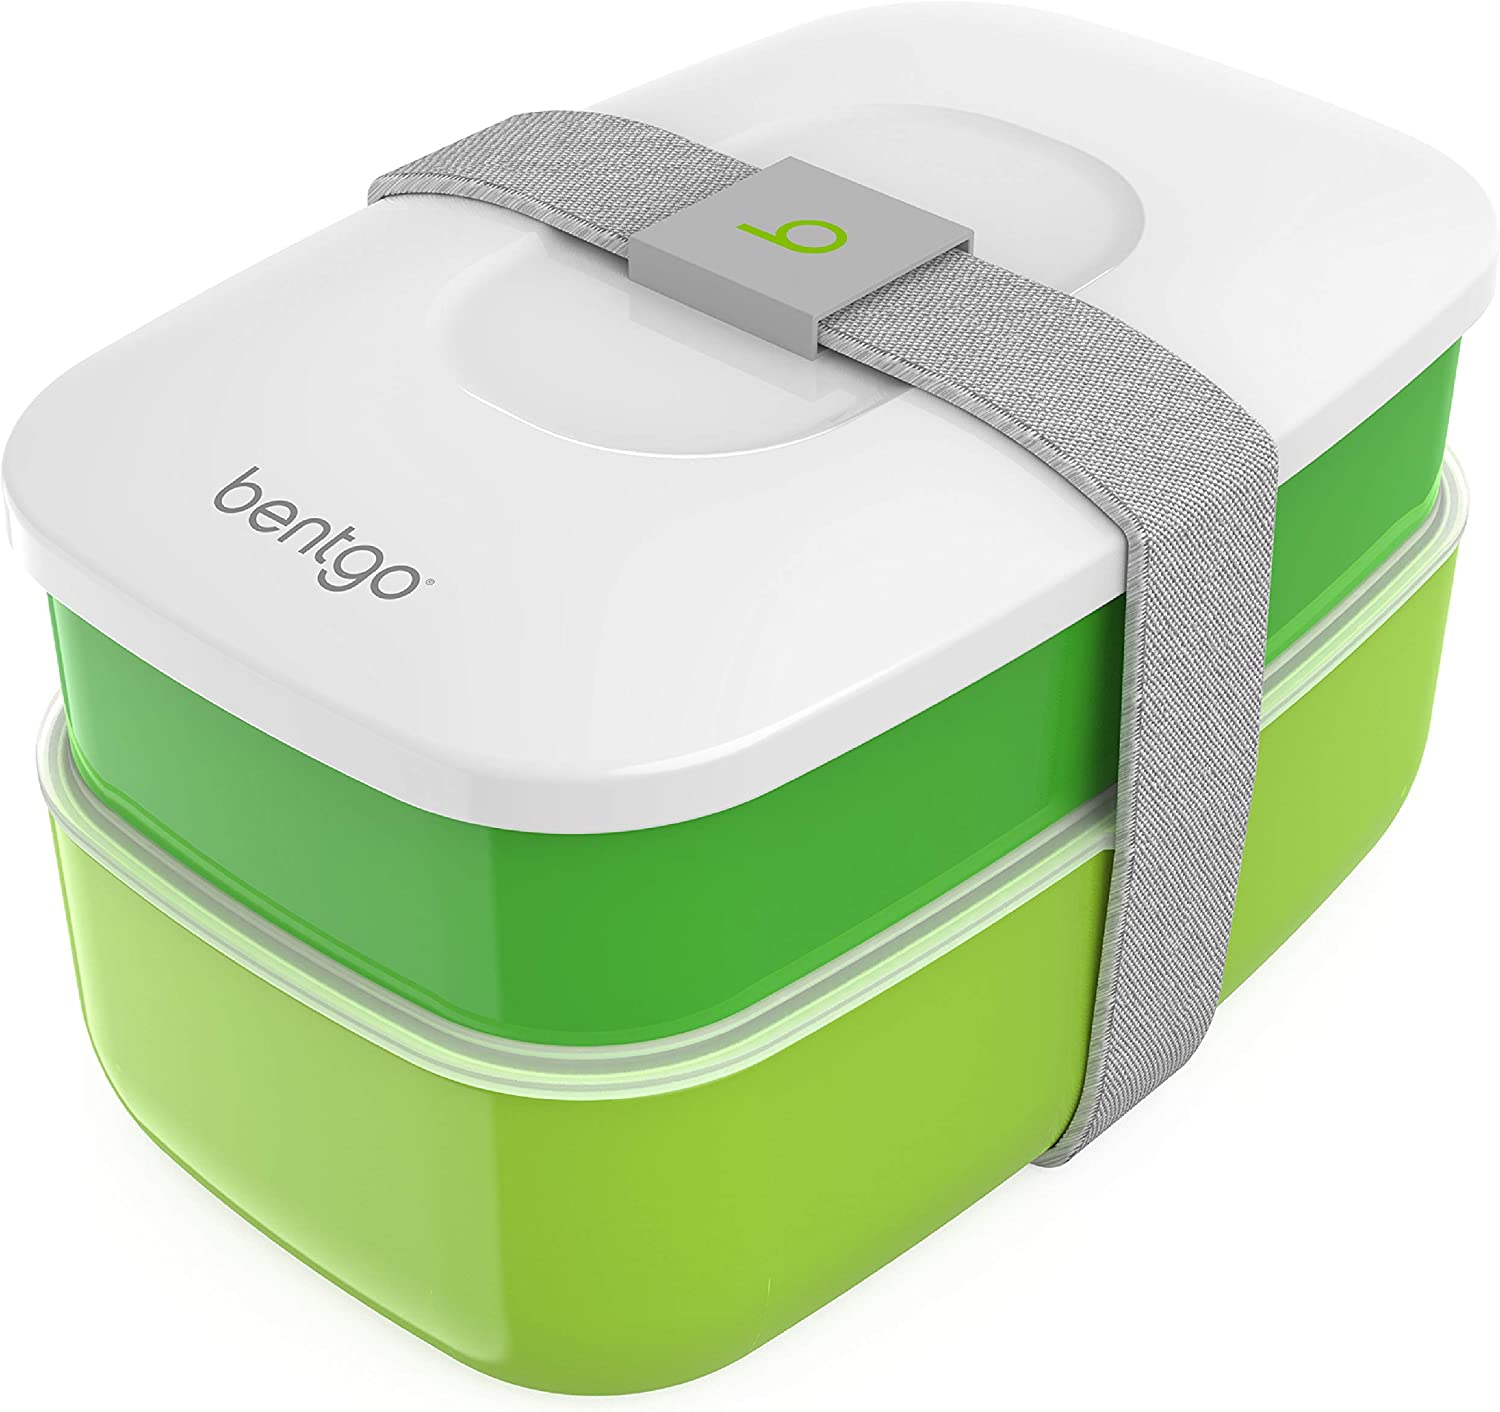 Bentgo Classic - All-in-One Stackable Bento Lunch Box Container - Sleek and Modern Bento-Style Design Includes 2 Stackable Containers, Built-in Plastic Utensil Set, and Nylon Sealing Strap (Green)